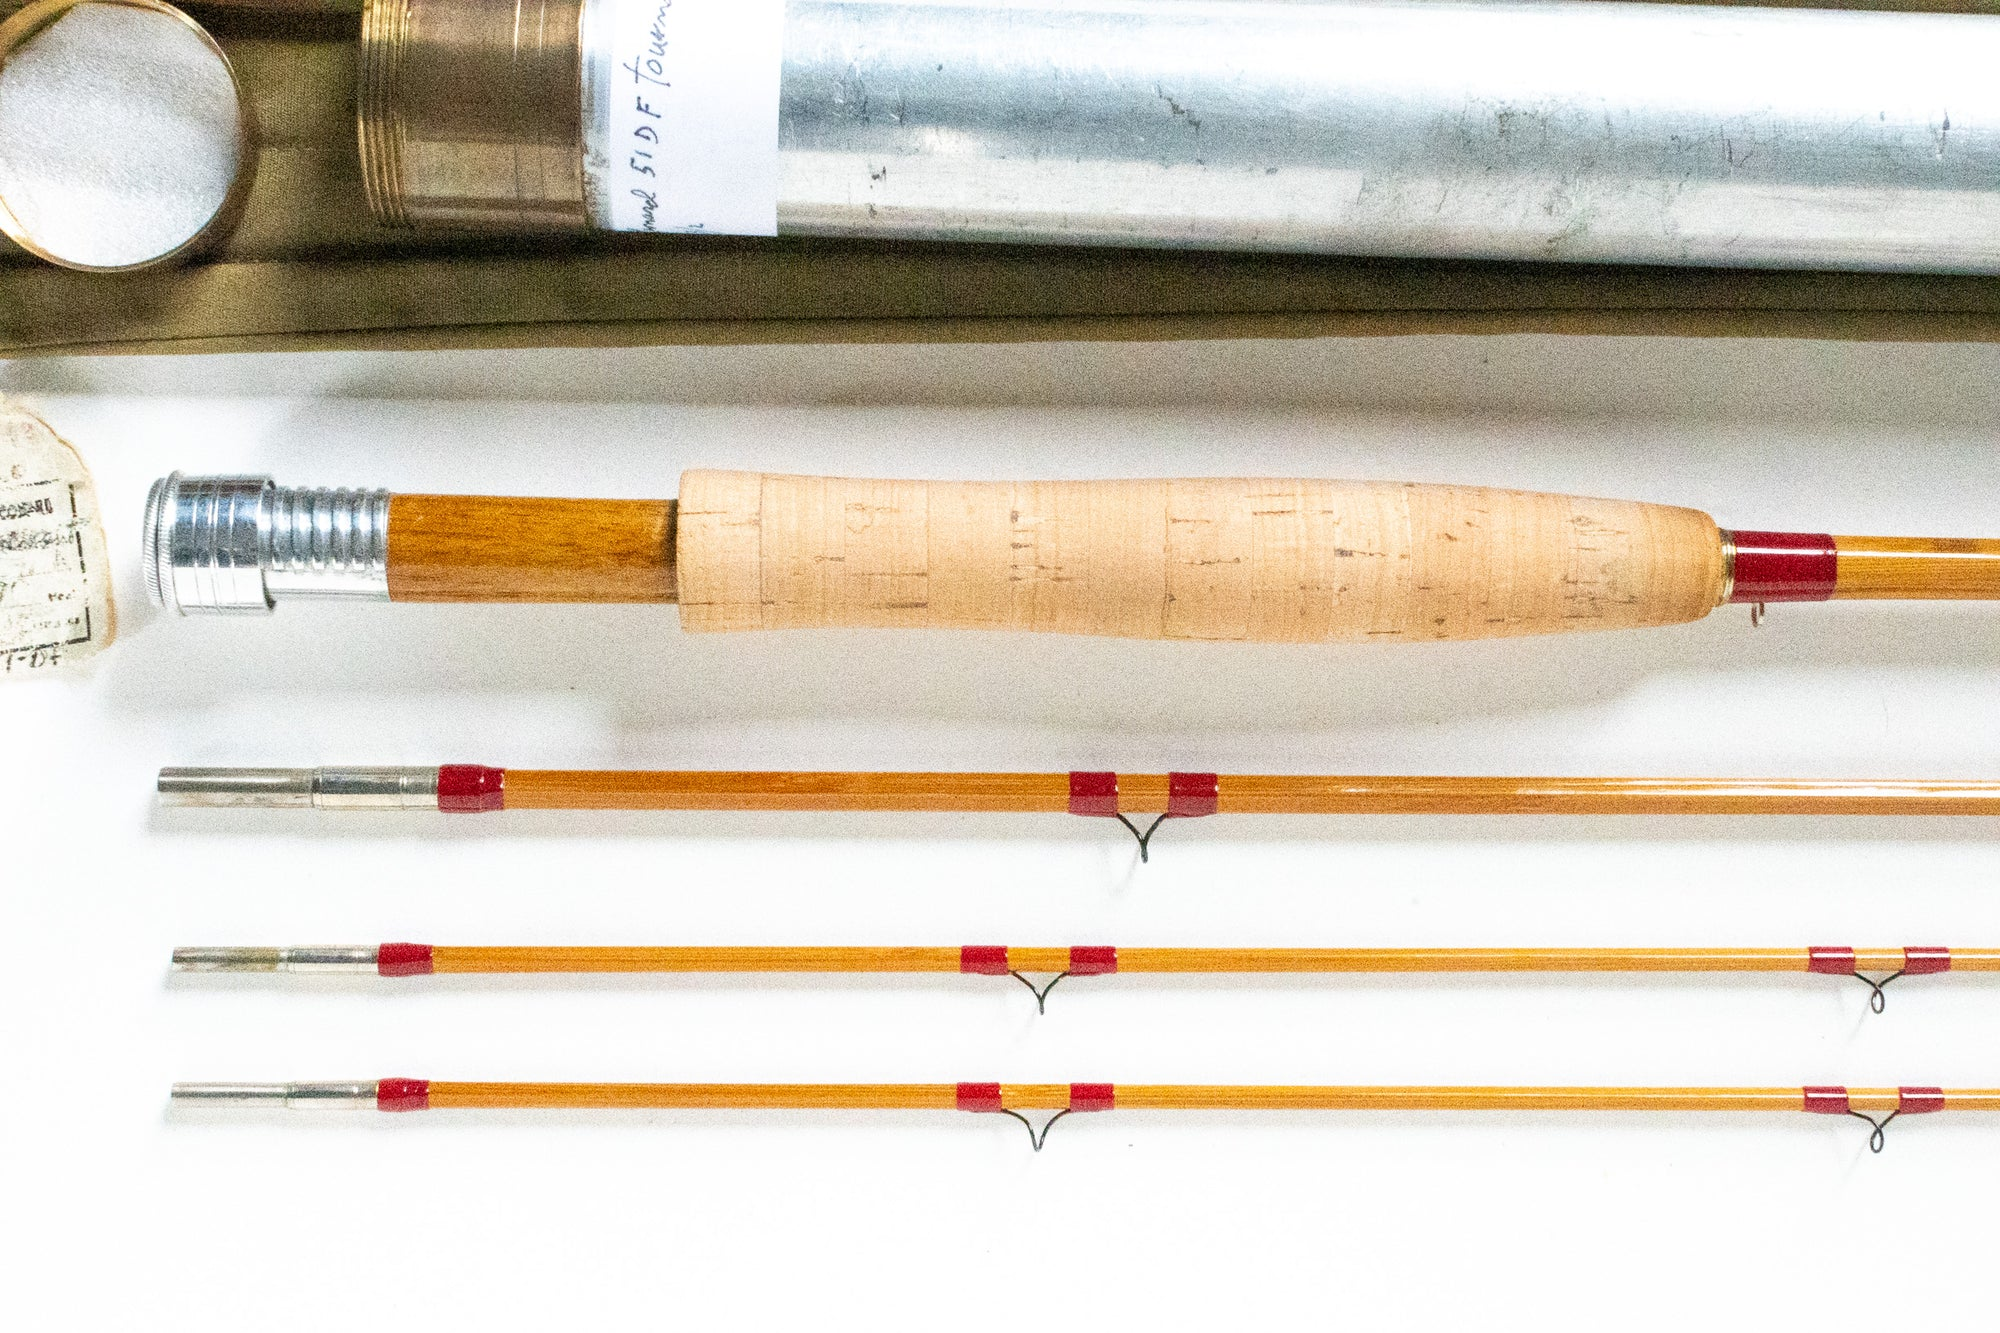 Leonard 51DF Tournament Fly Rod 9' 3/2 #6